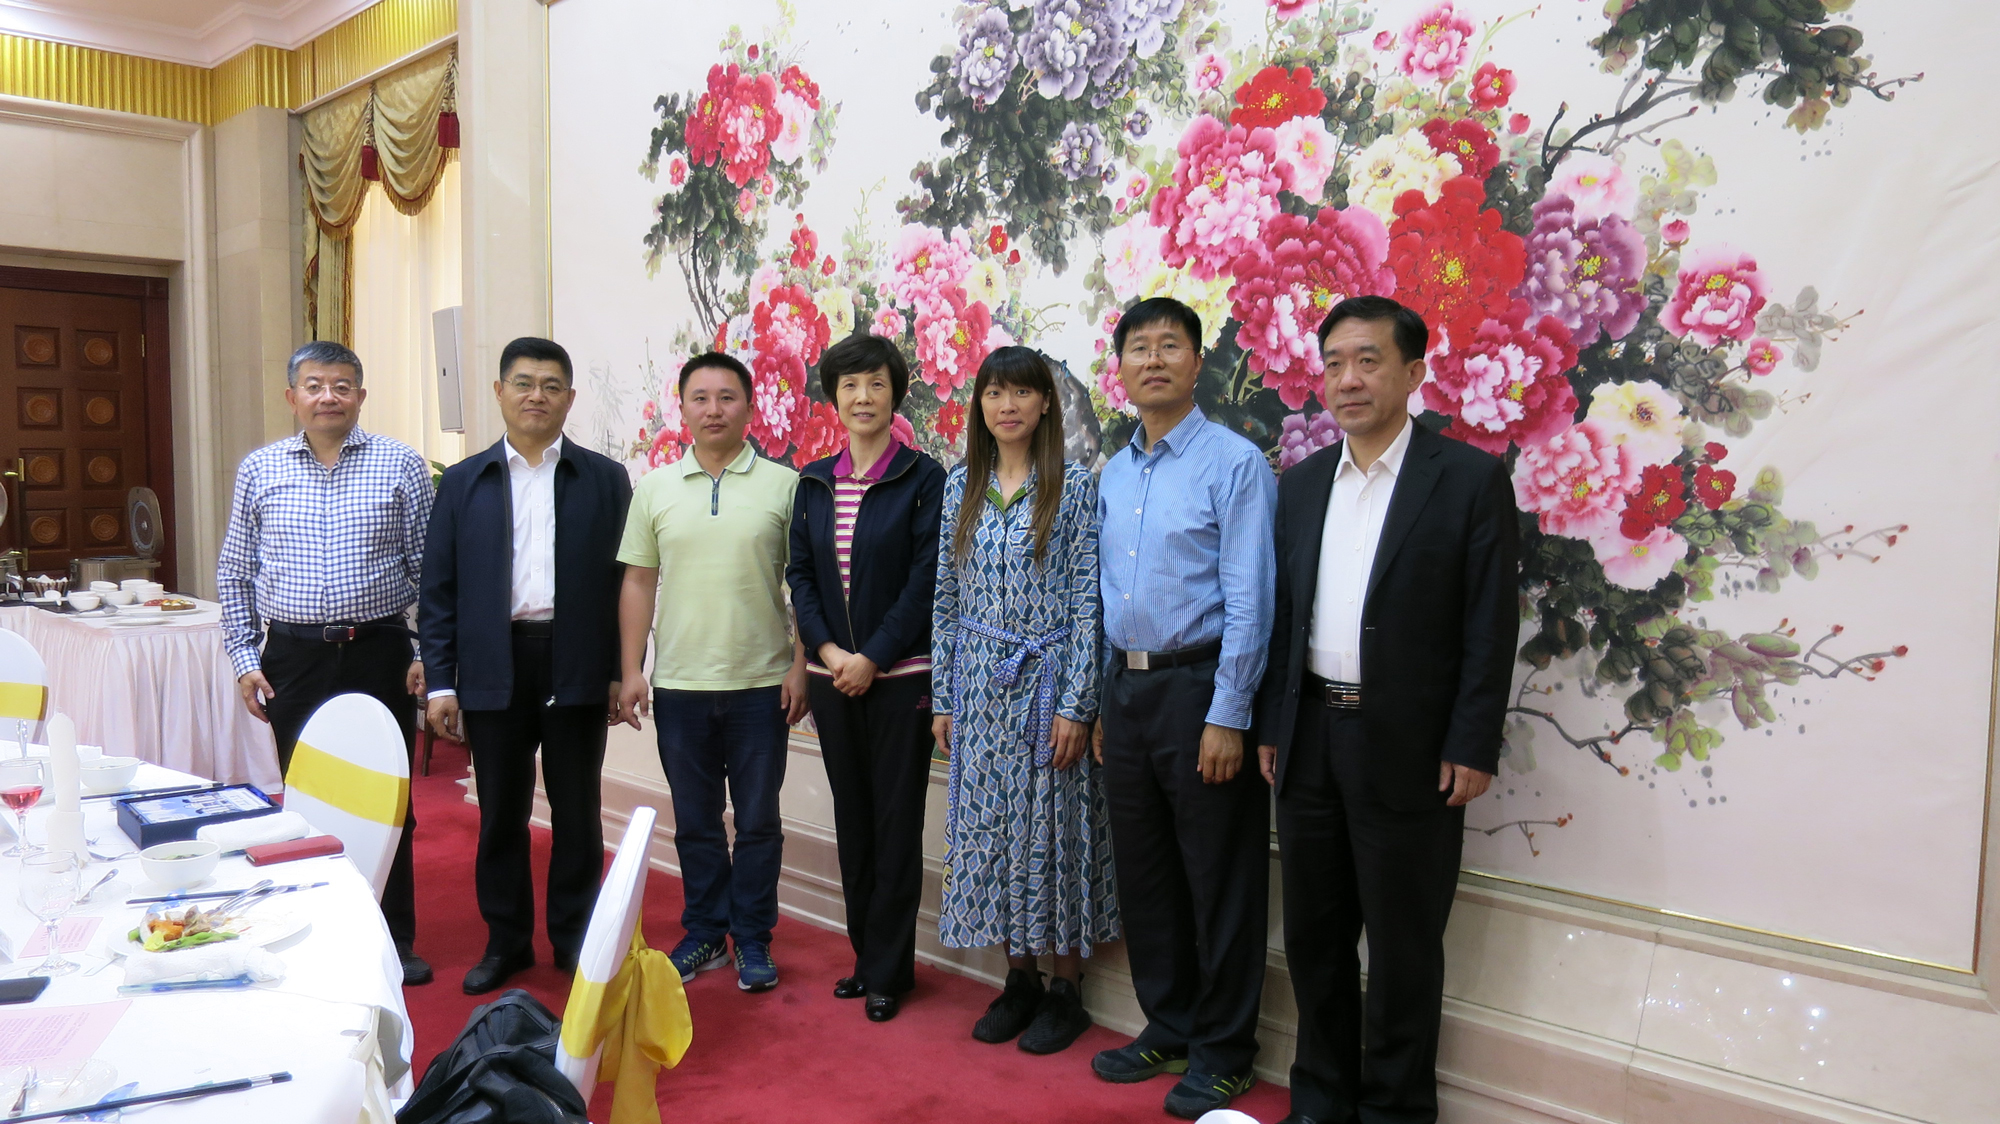 The UM delegation is warmly received by Wang Lingjie, vice president of the Chinese People's Political Consultative Conference in Dalian